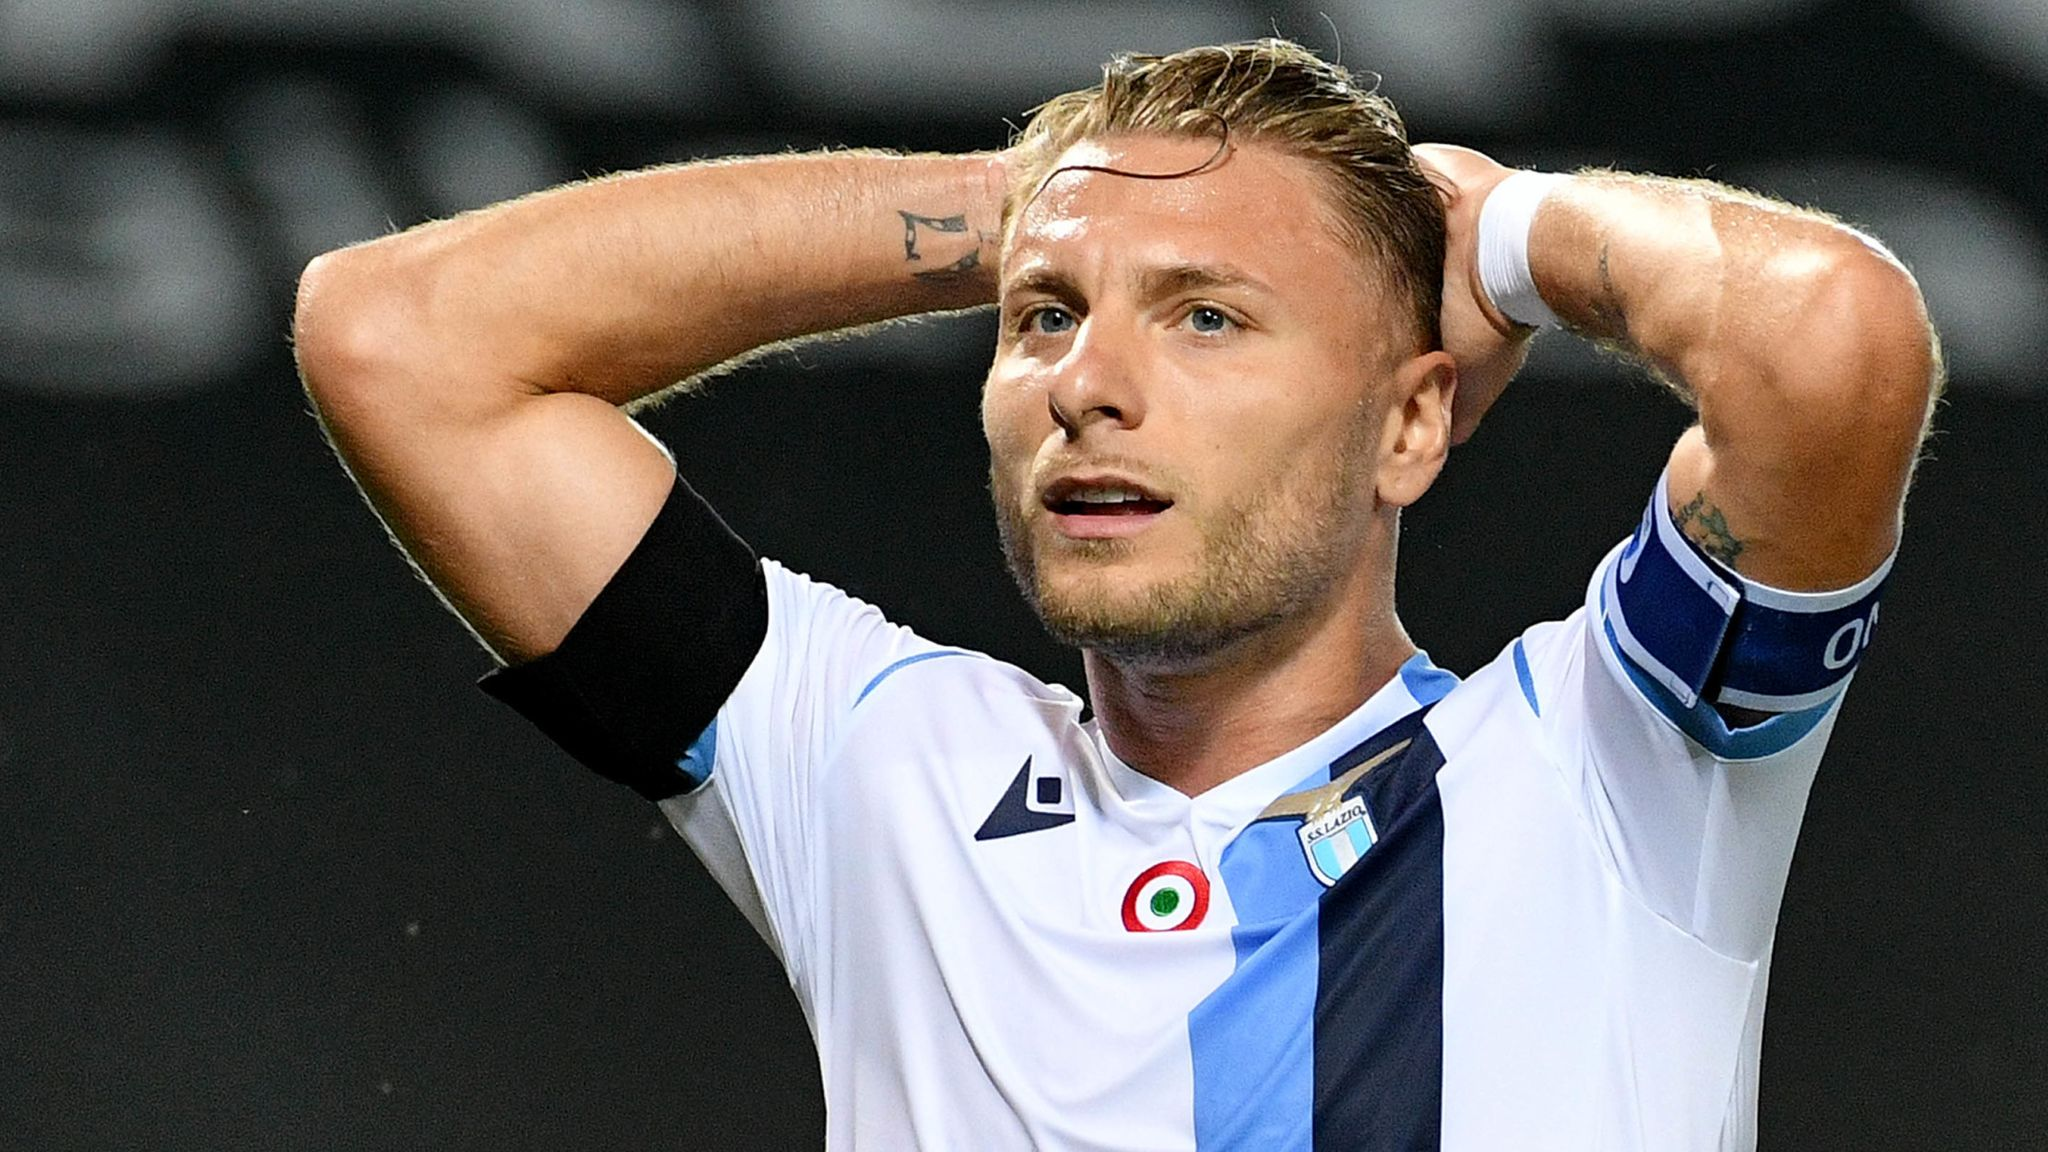 Atalanta 3 - 2 Lazio - Match Report & Highlights